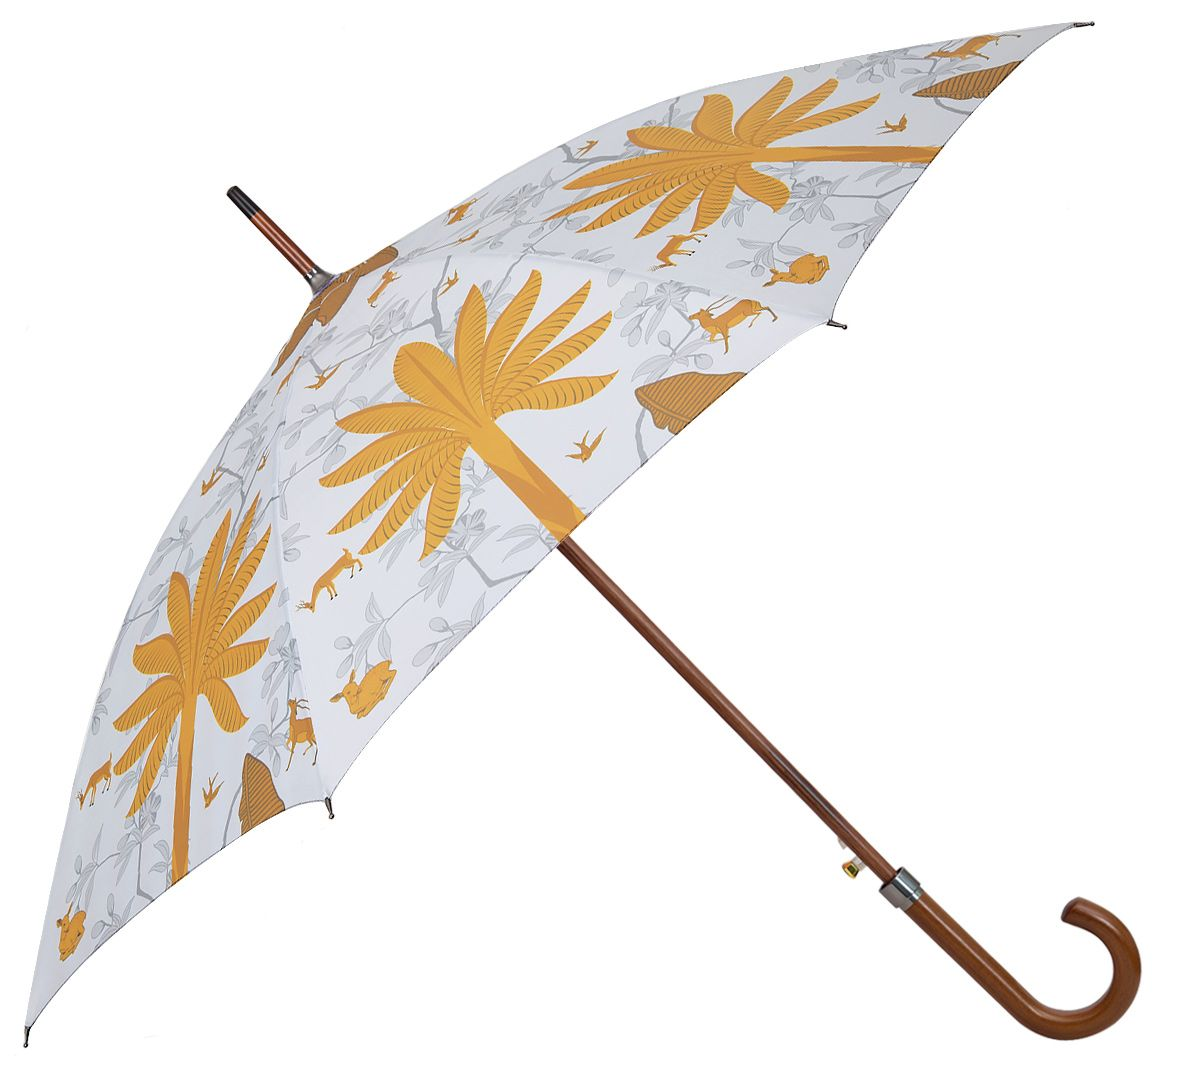 Brooding Woodlot Umbrella